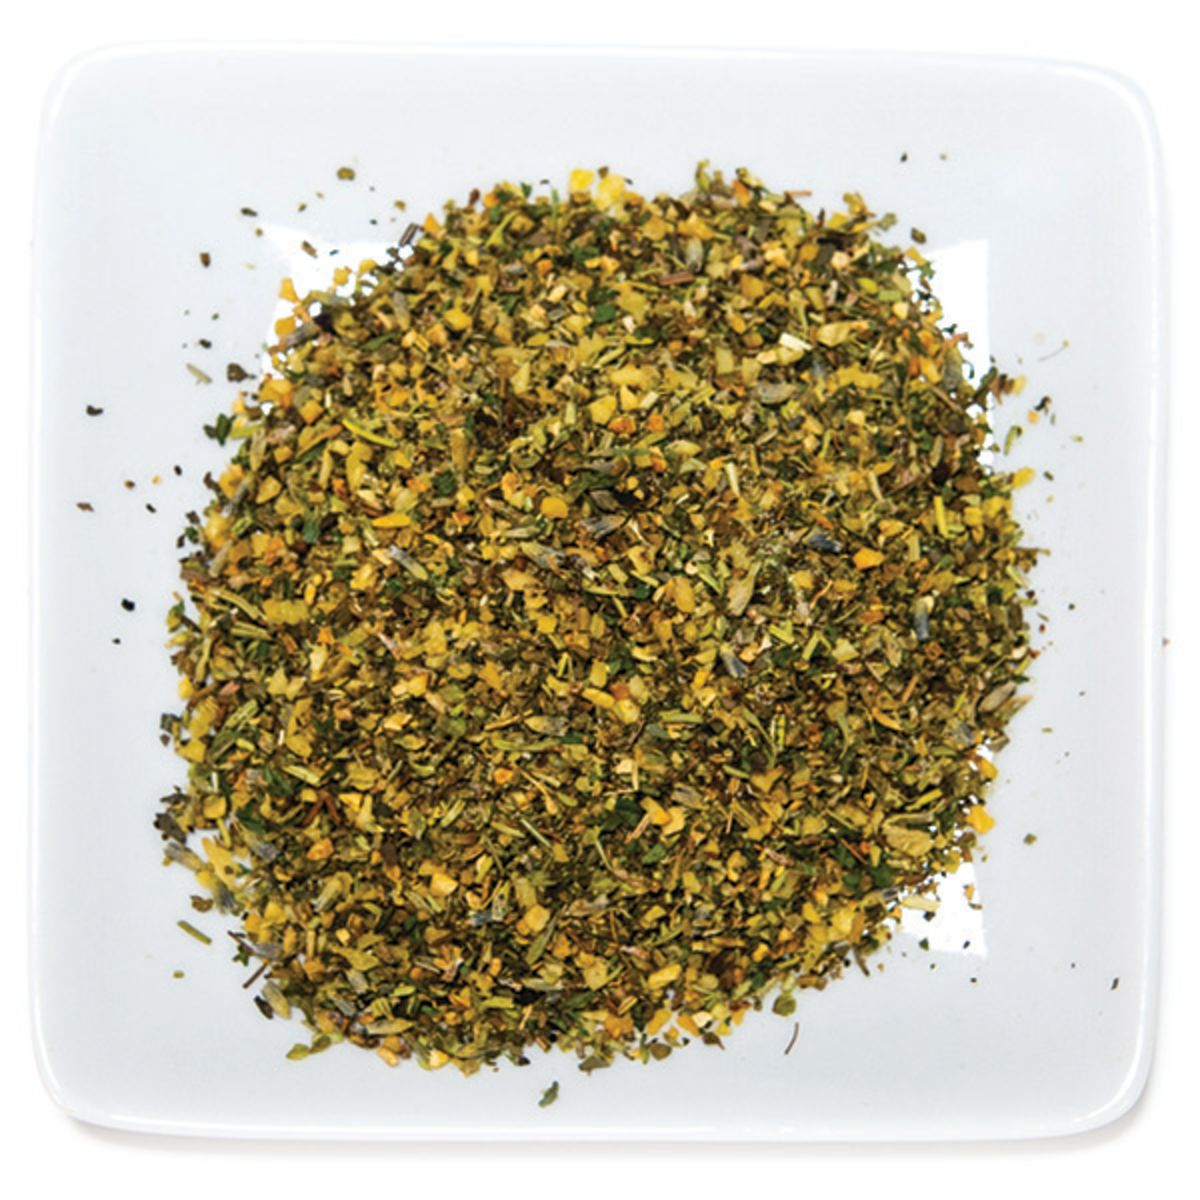 Herbs De Provence, 3.5 ozs by weight [3/4 cup by volume]